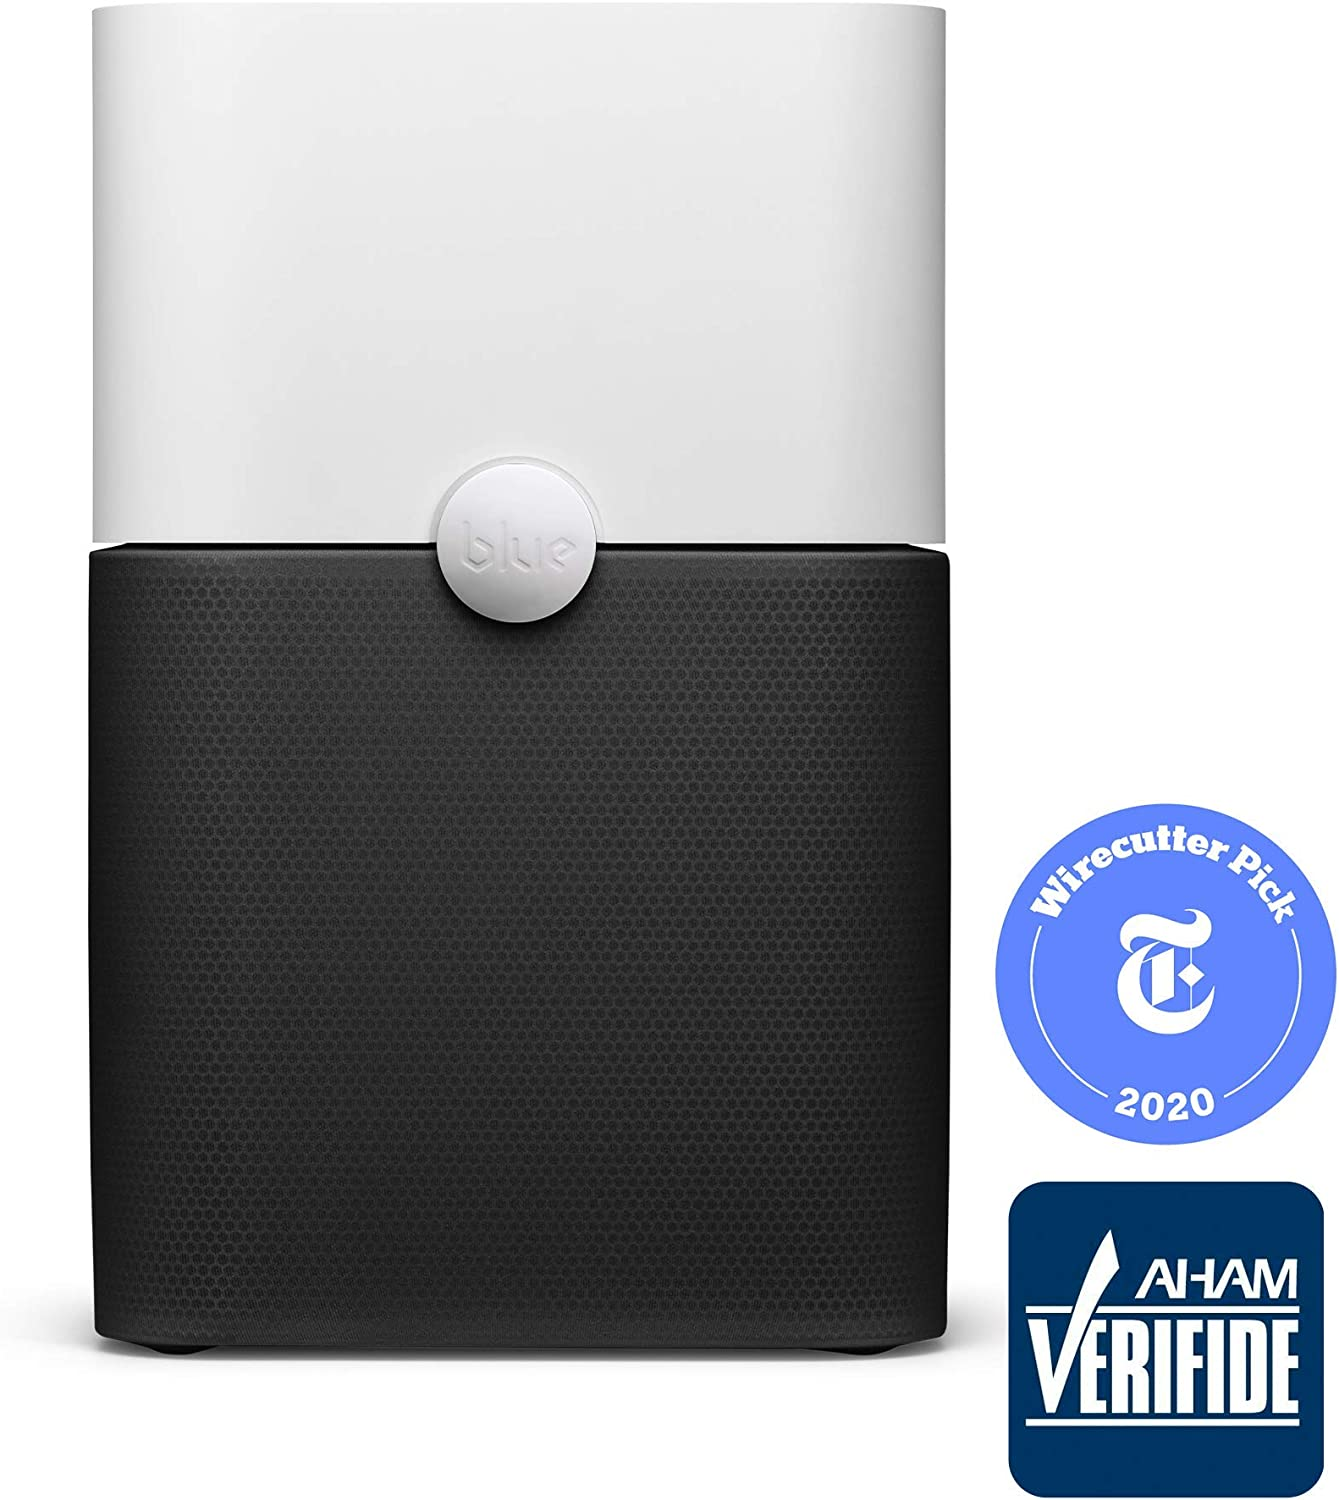 5 Best Air Purifier With Washable Filter (2021 Review) 2